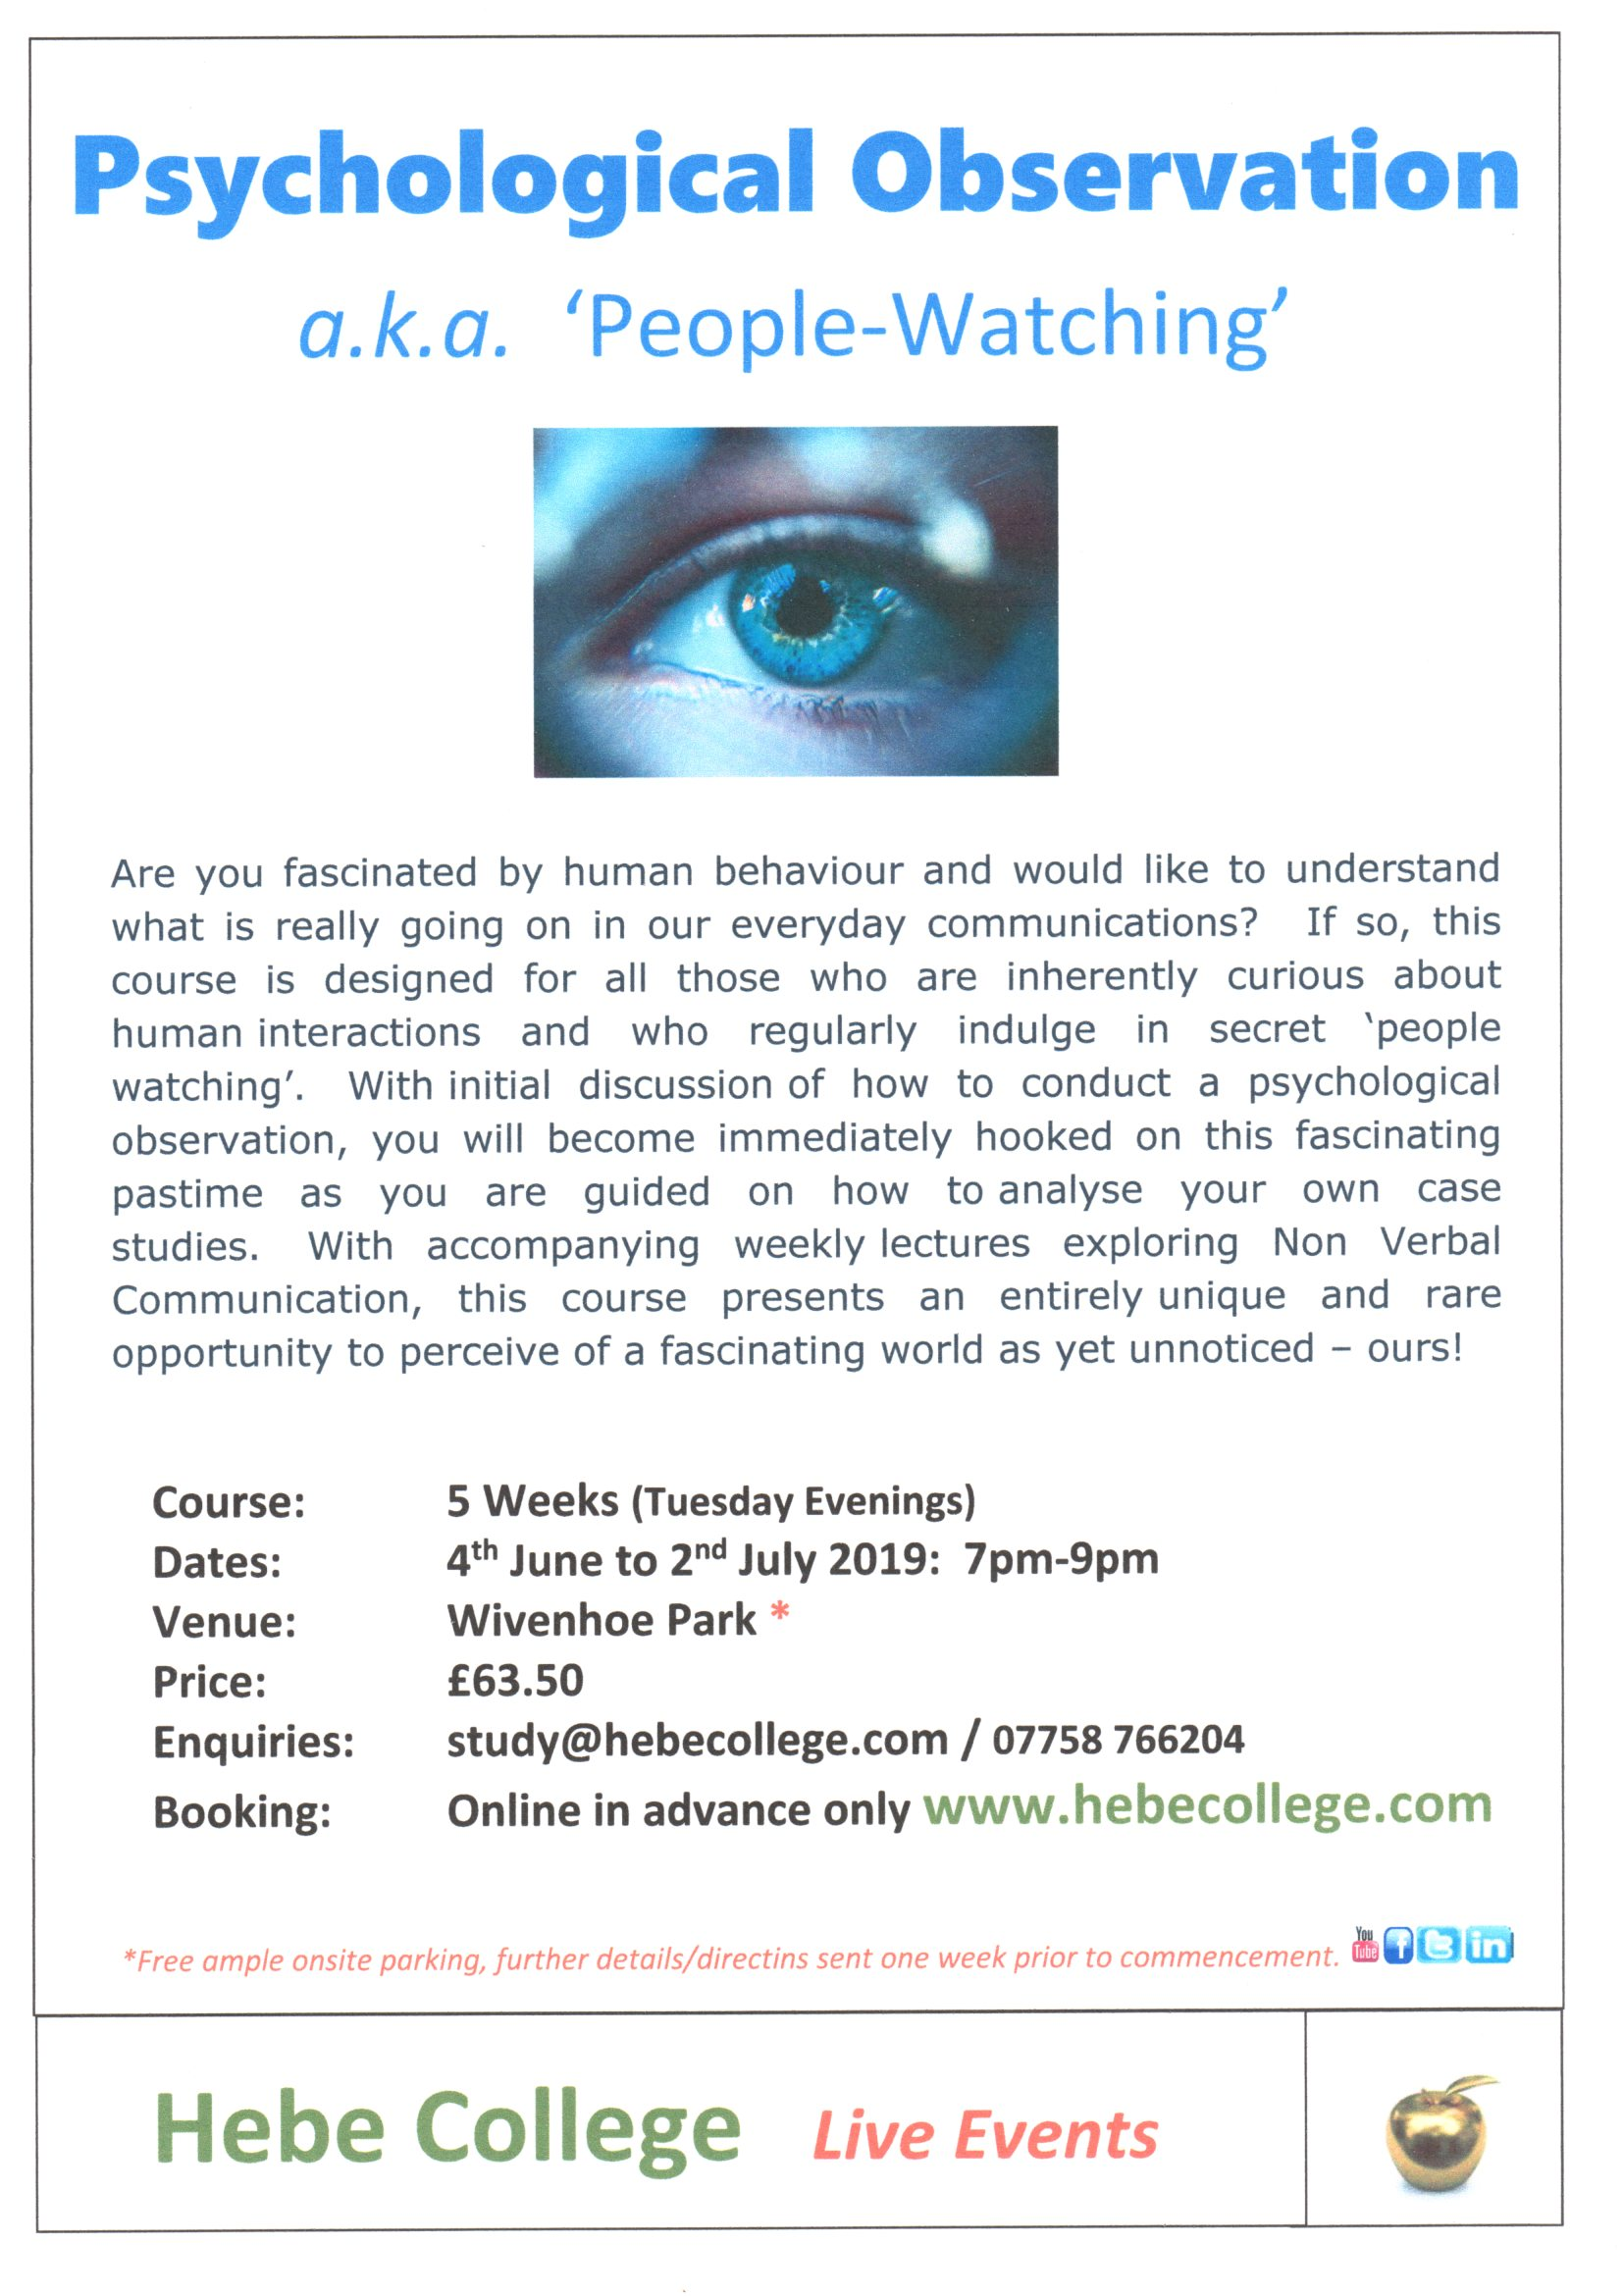 Psychological Observation 'People Watching' - 5 Wks